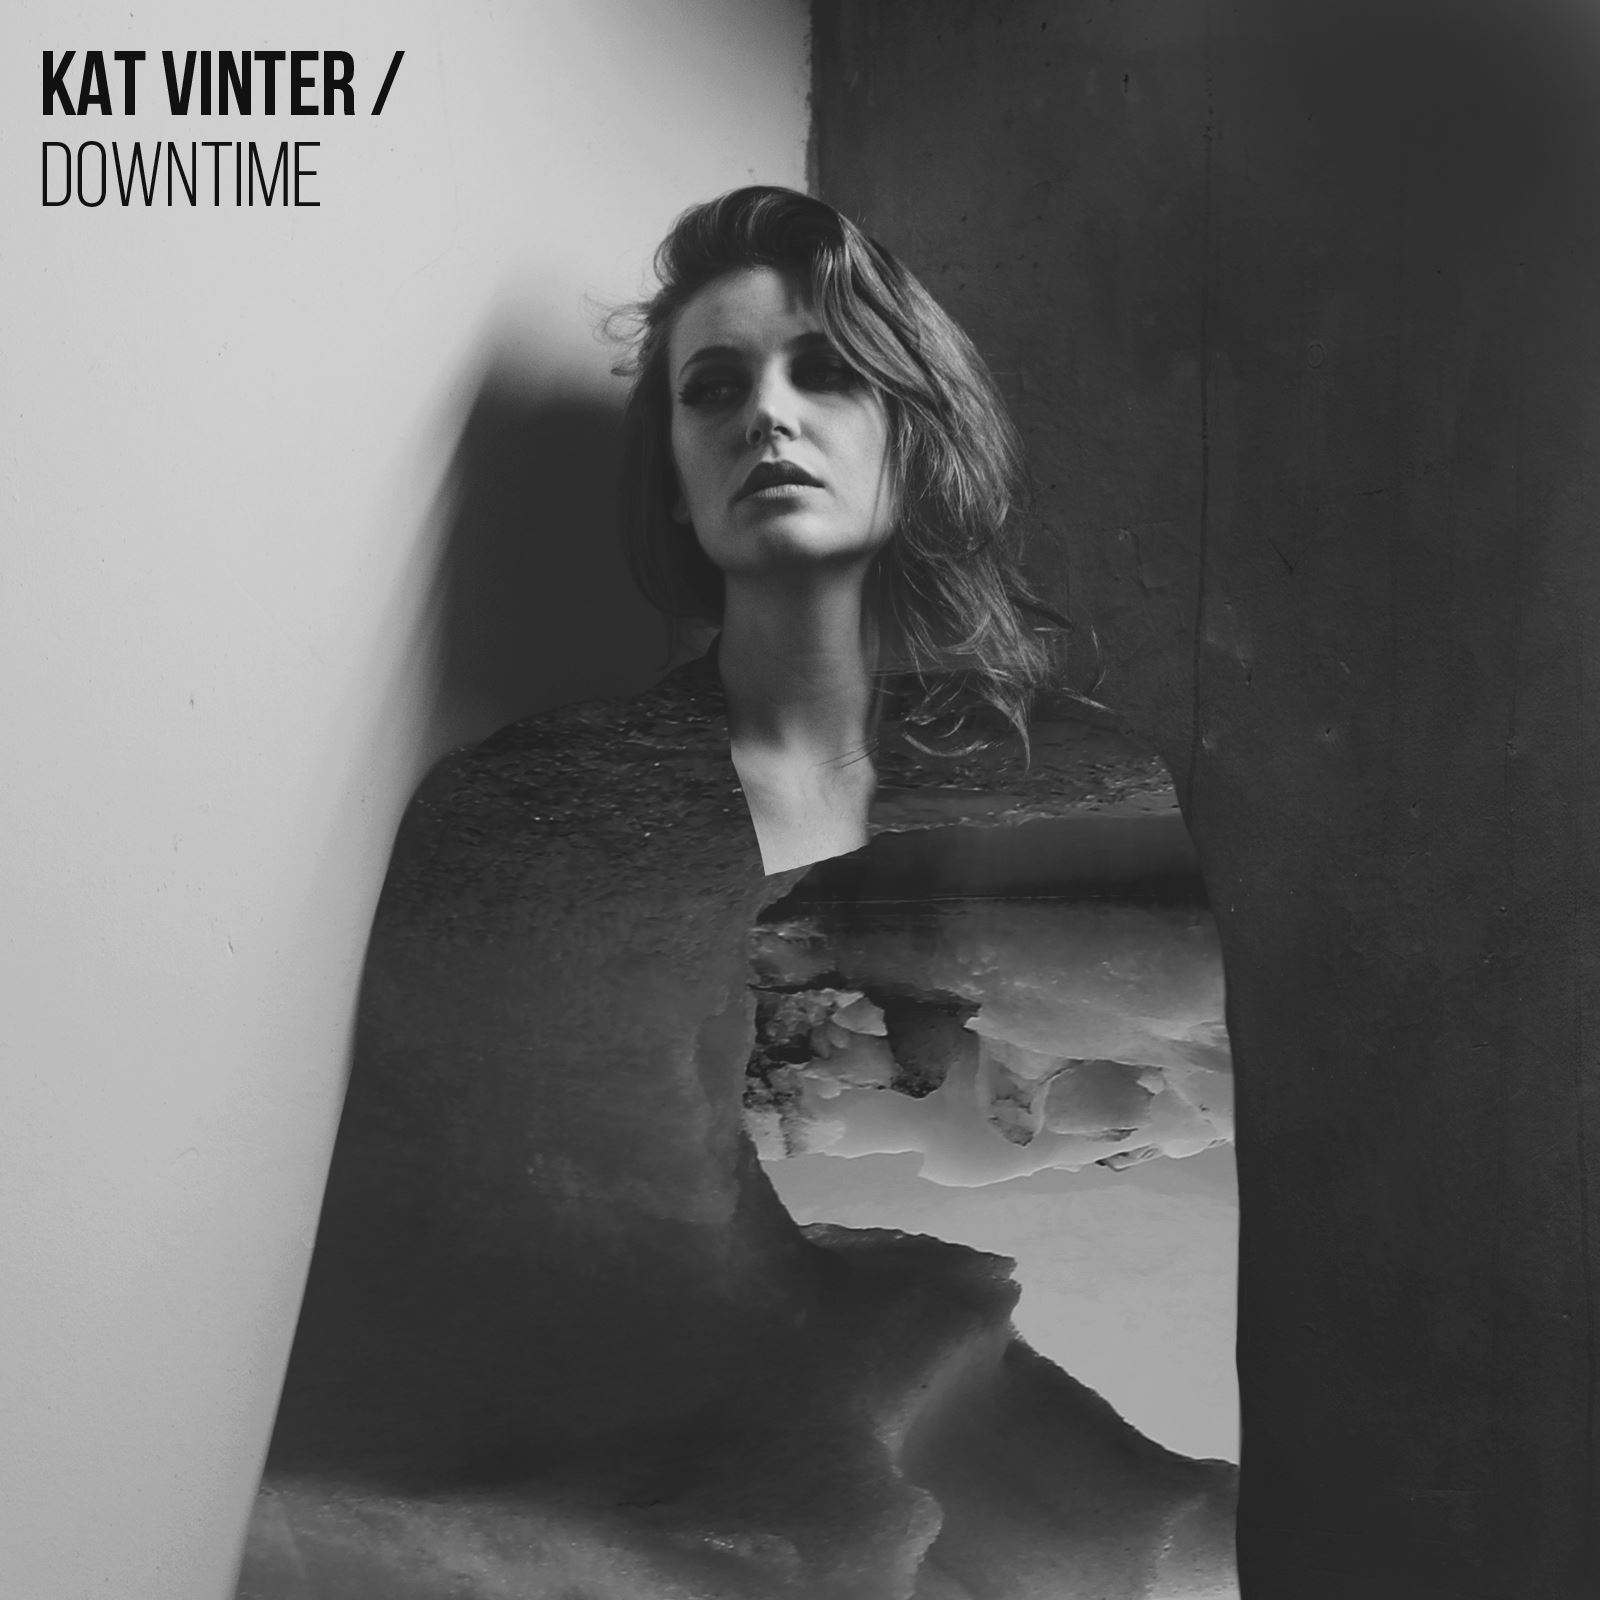 katvinter-downtime-single-cover